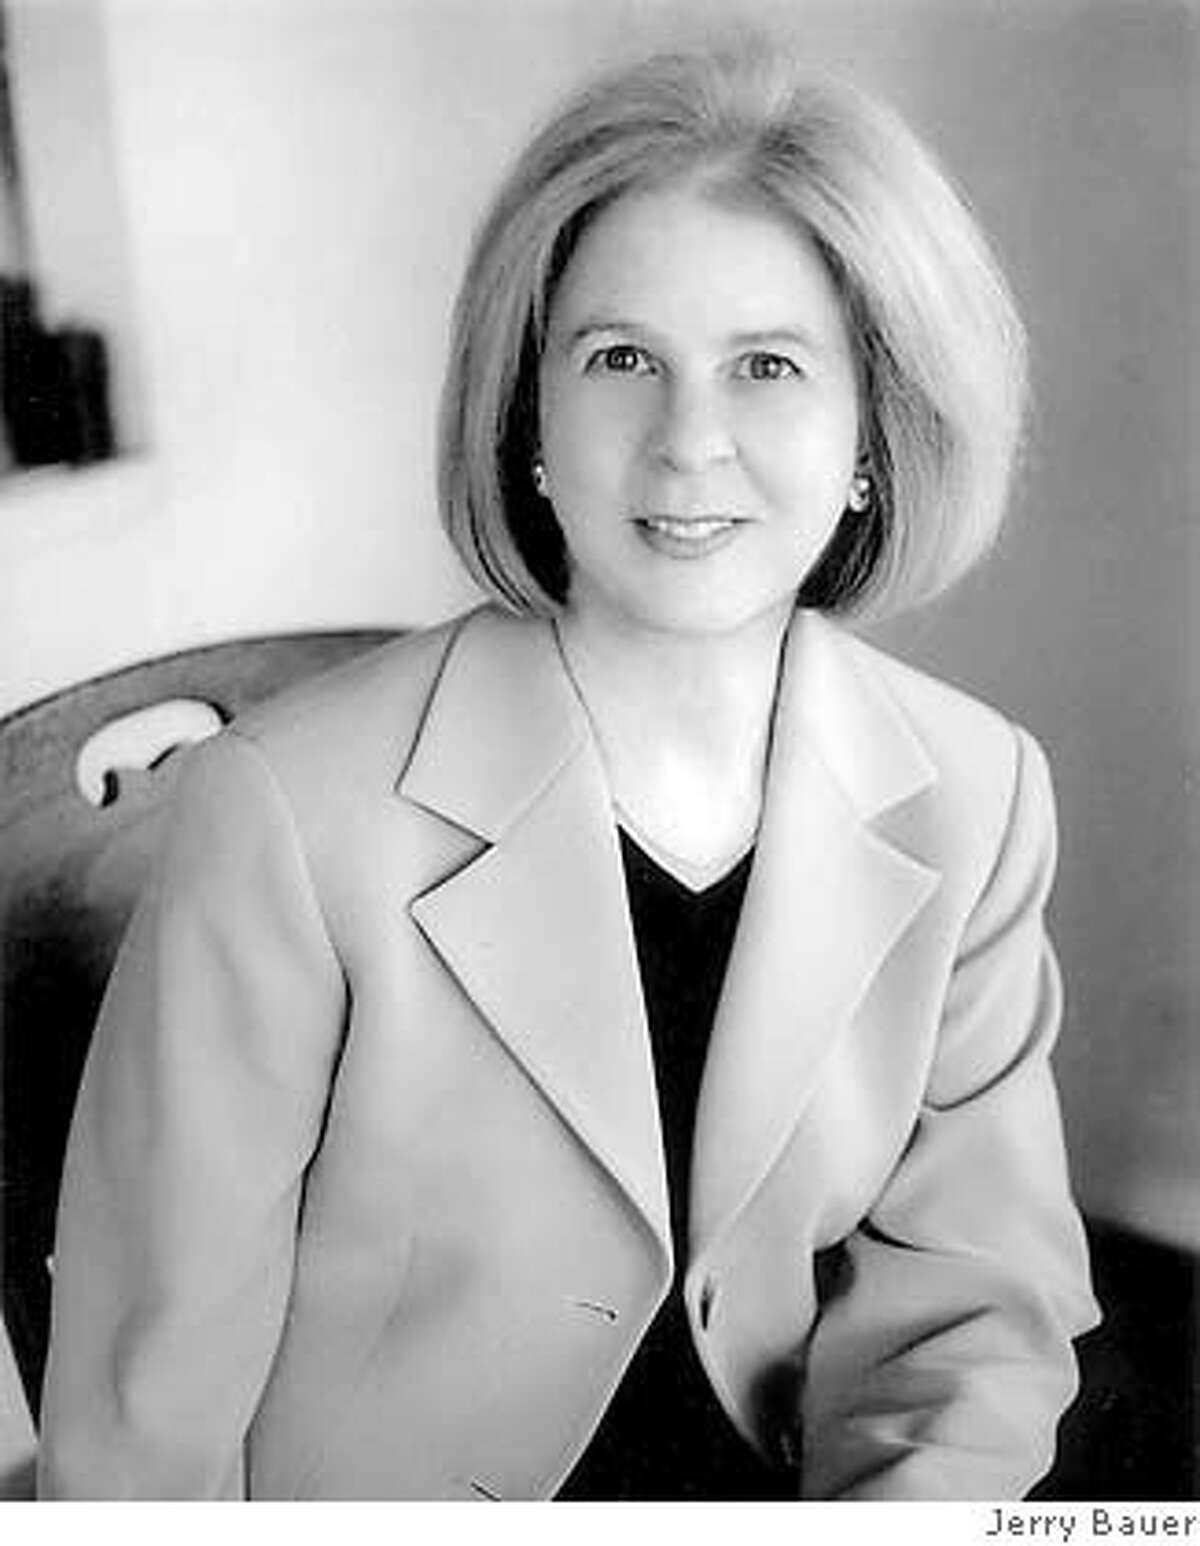 Elaine Pagels, author of